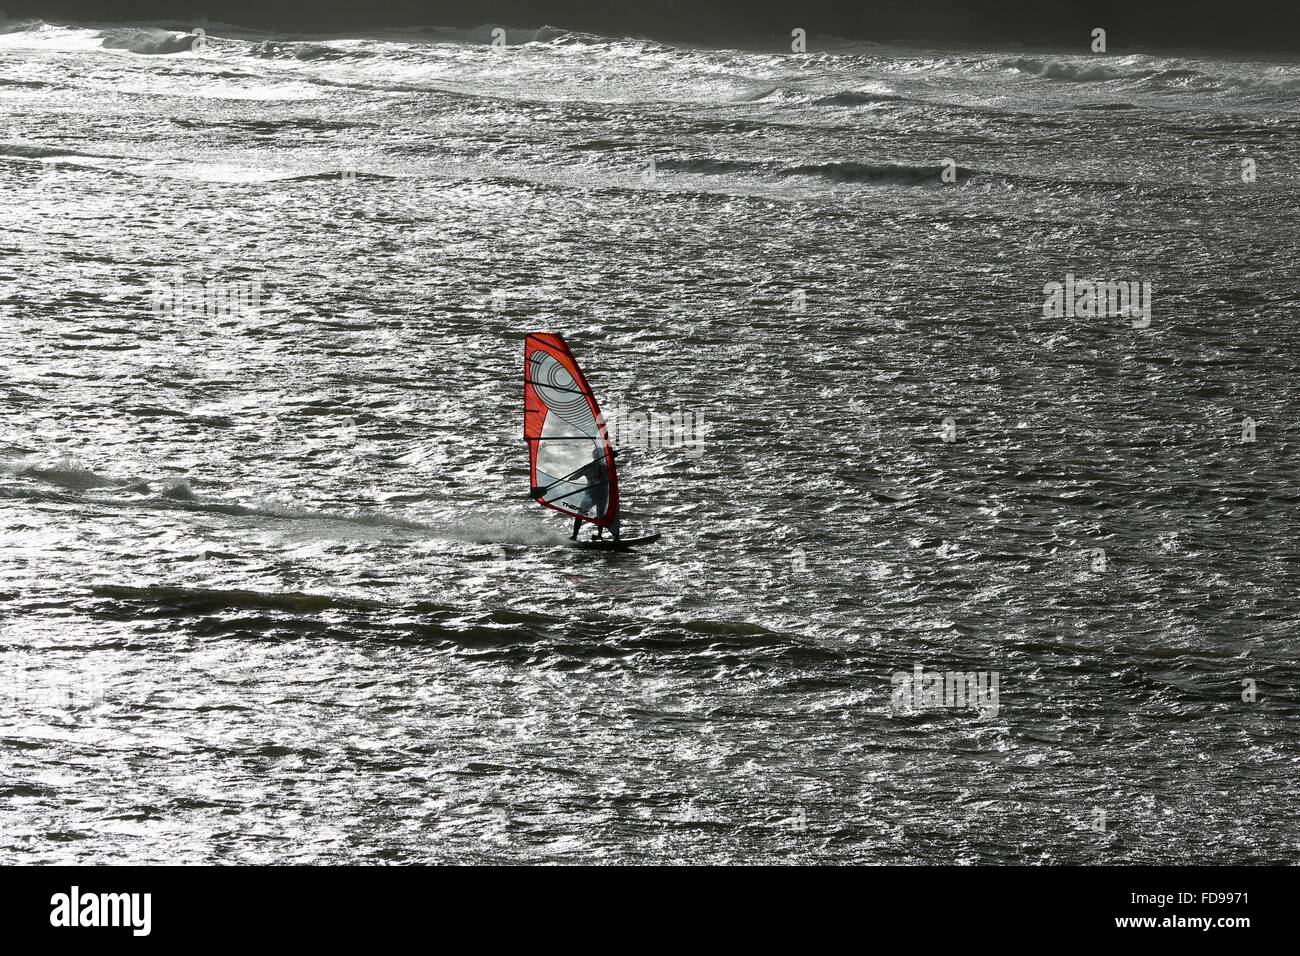 A windsurfer on the south Devon coast on a sunny winter's day. - Stock Image